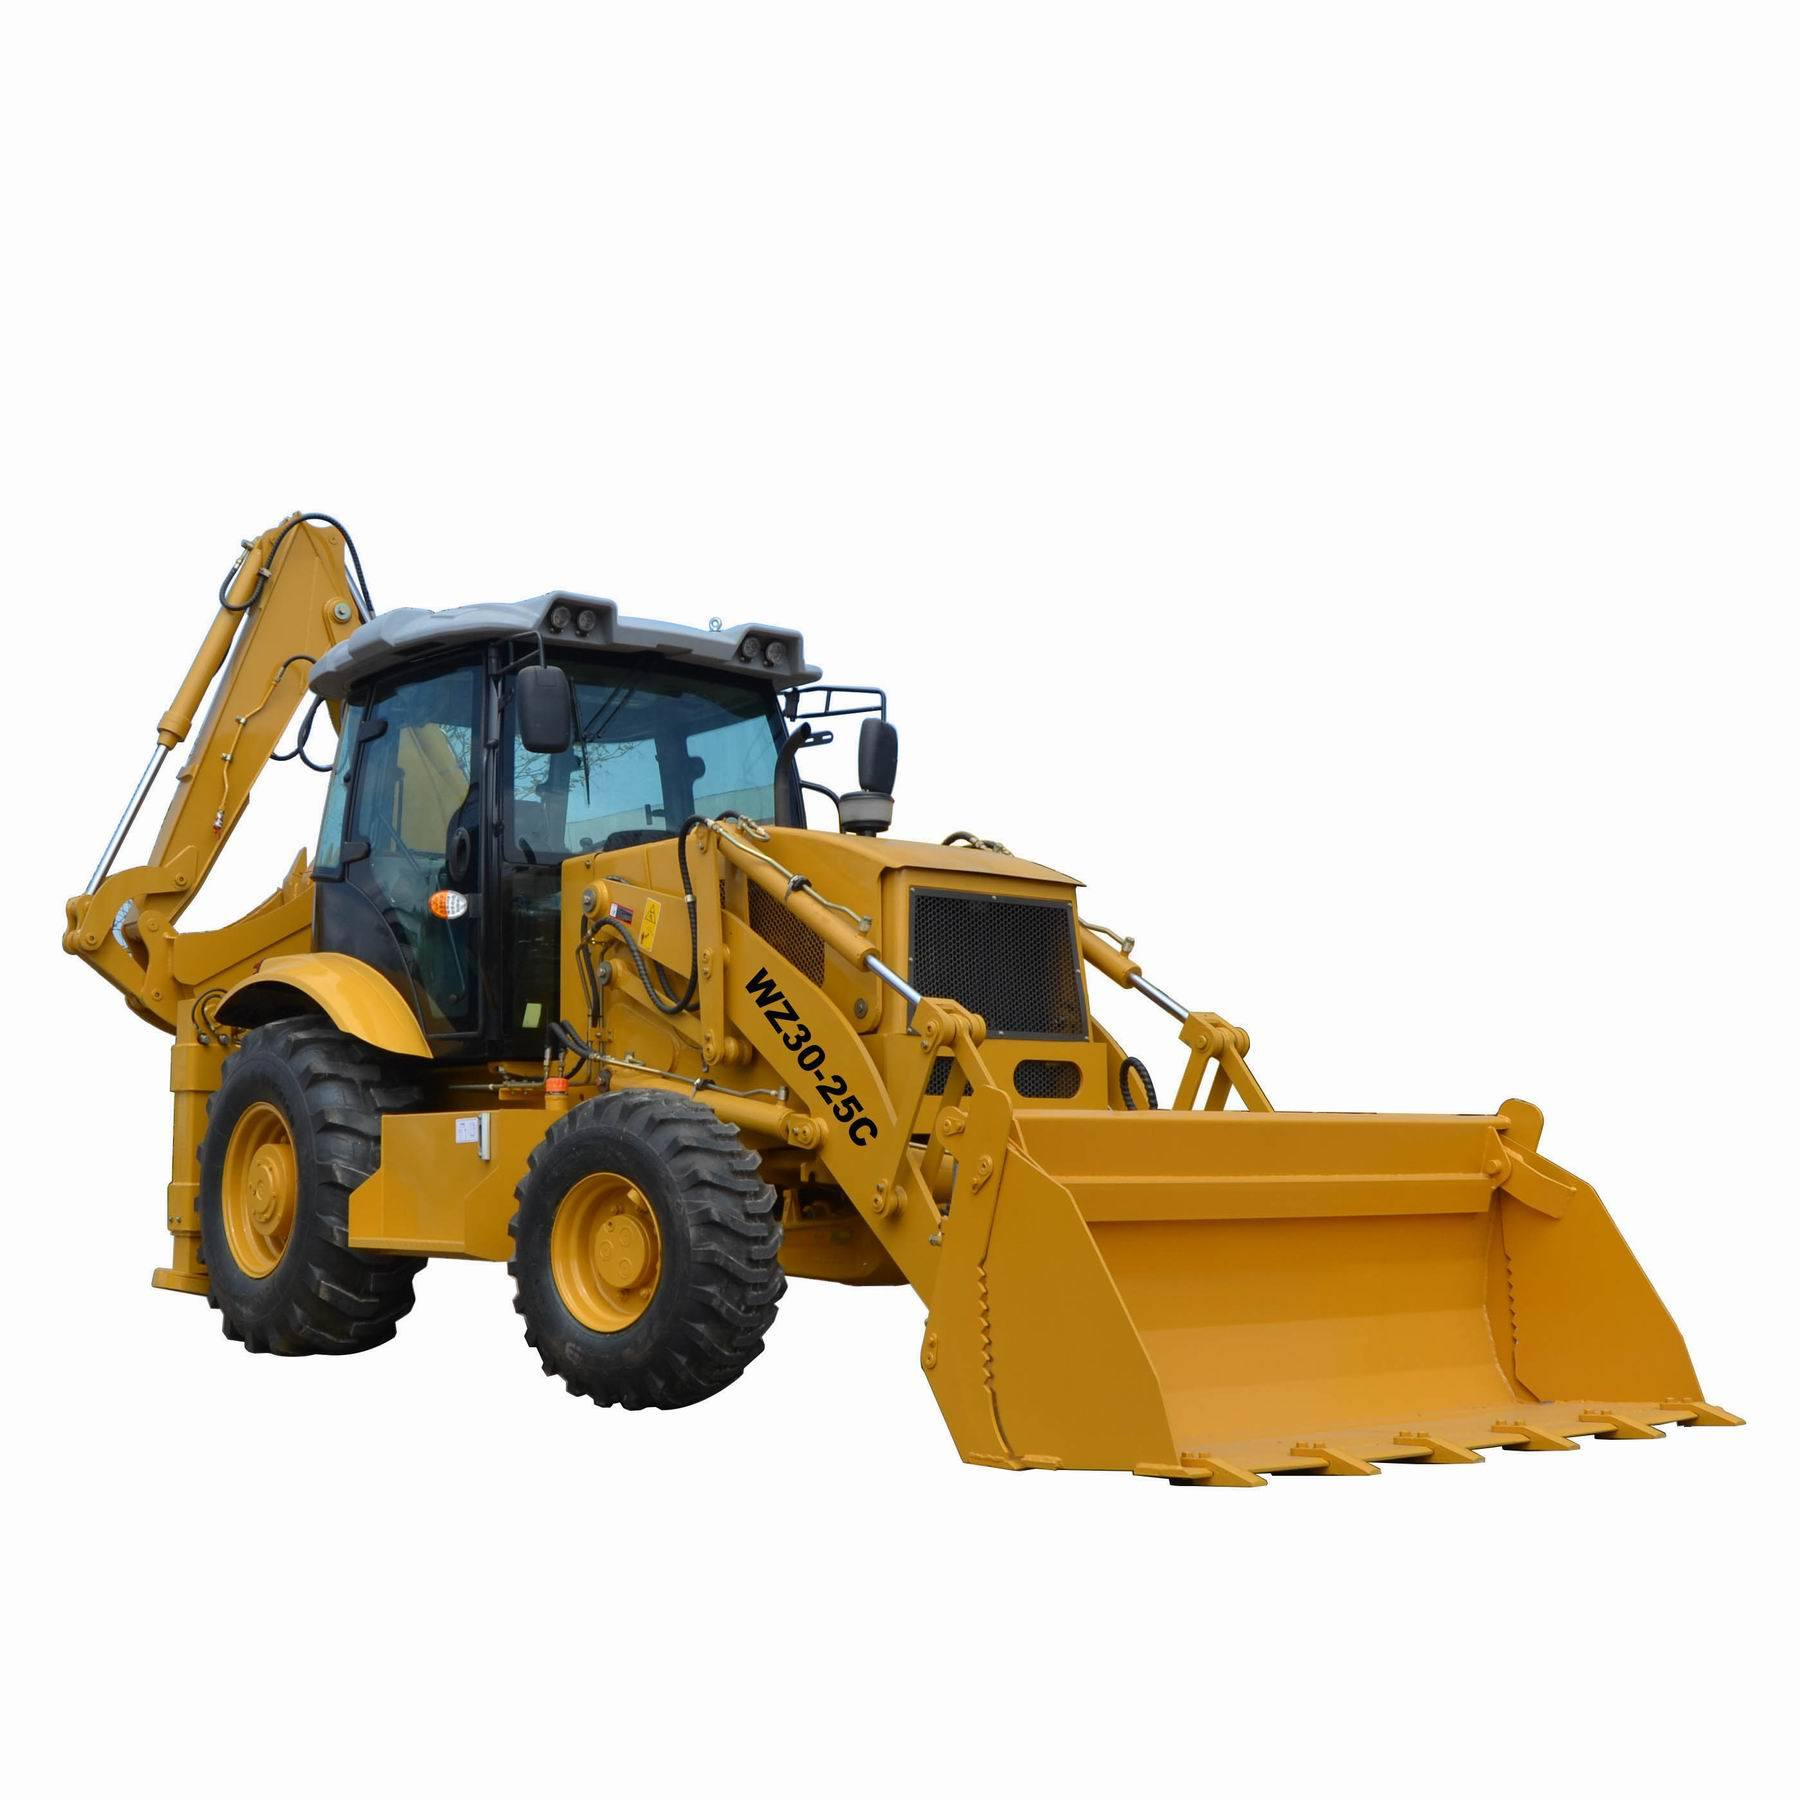 China New Small Wheel Type Backhoe Loader Price Factory